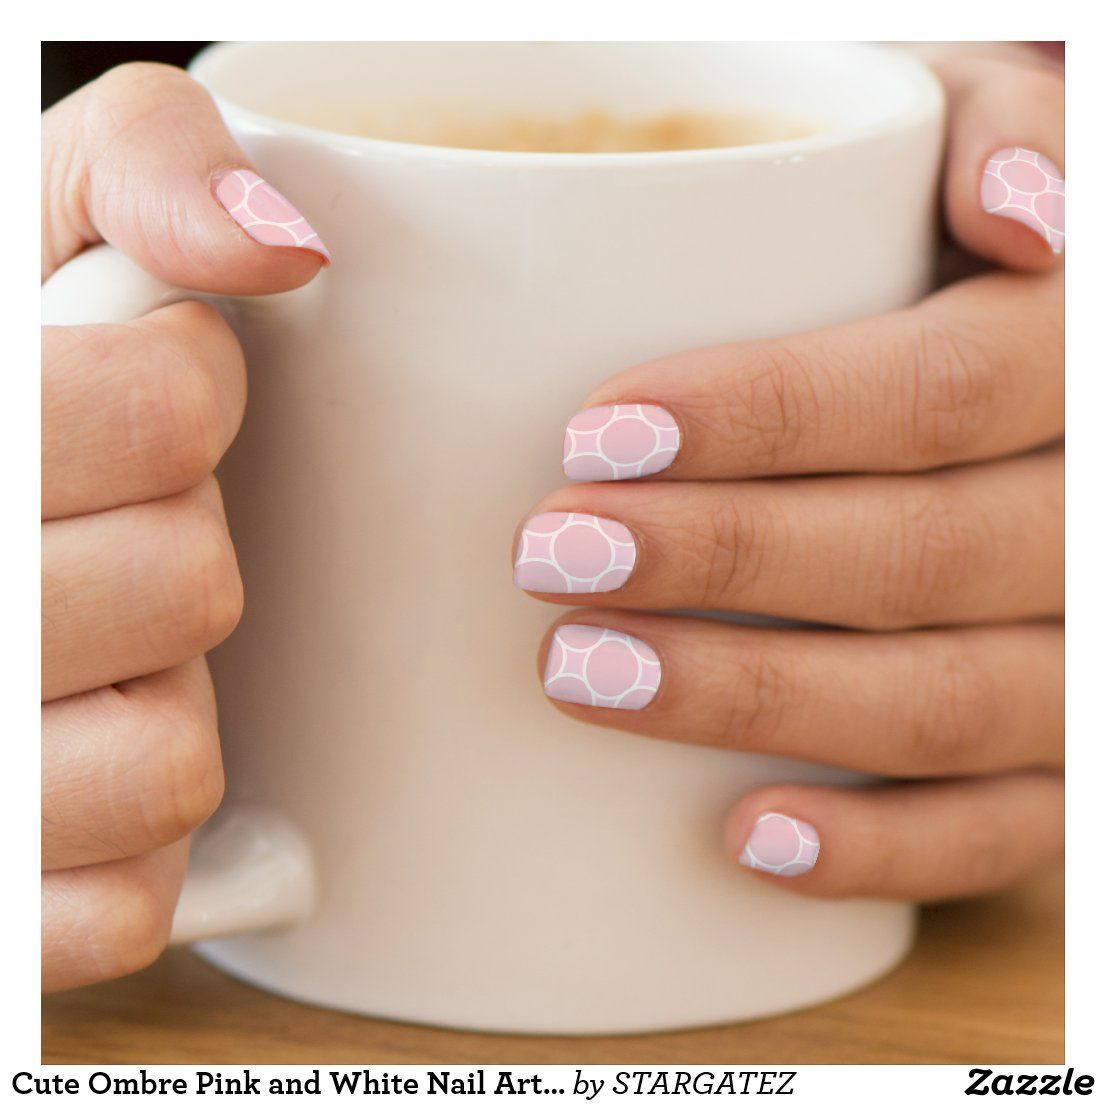 White Is Not Always Right Especially When It Comes To Your Health You May Love White Colo In 2020 White Spots On Nails White Marks On Fingernails White Dots On Nails